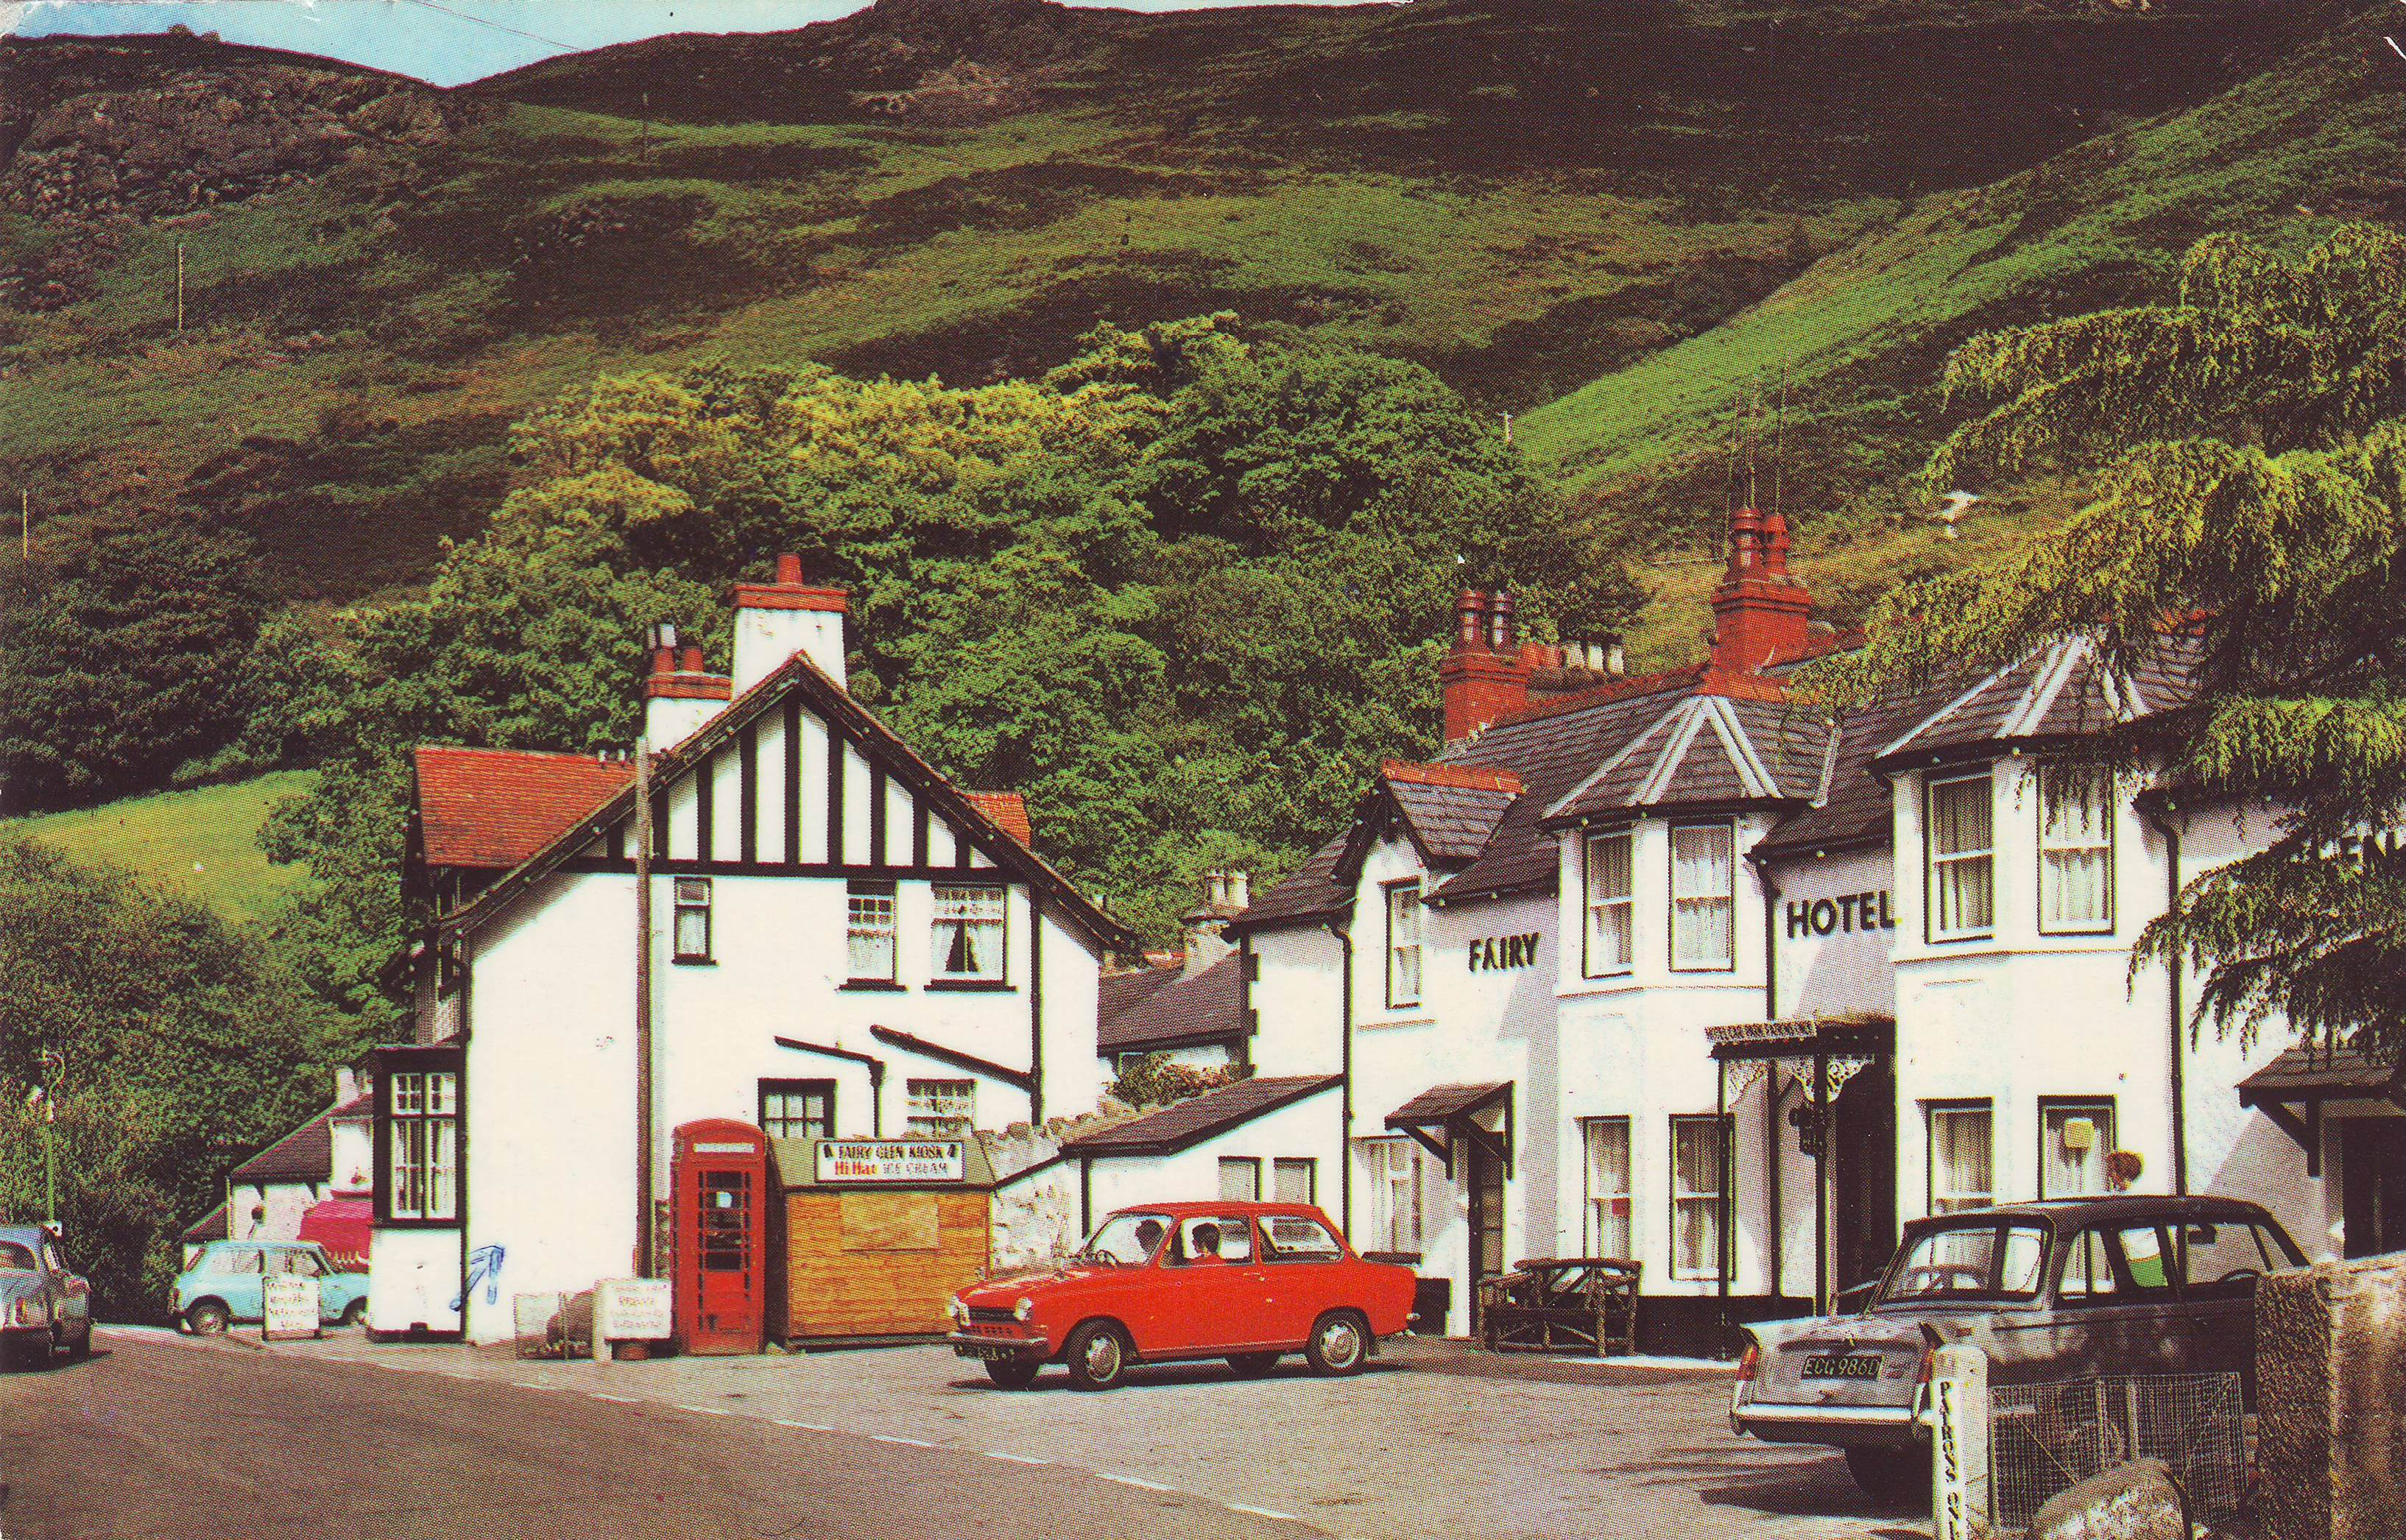 DAF undaunted by Welsh mountains